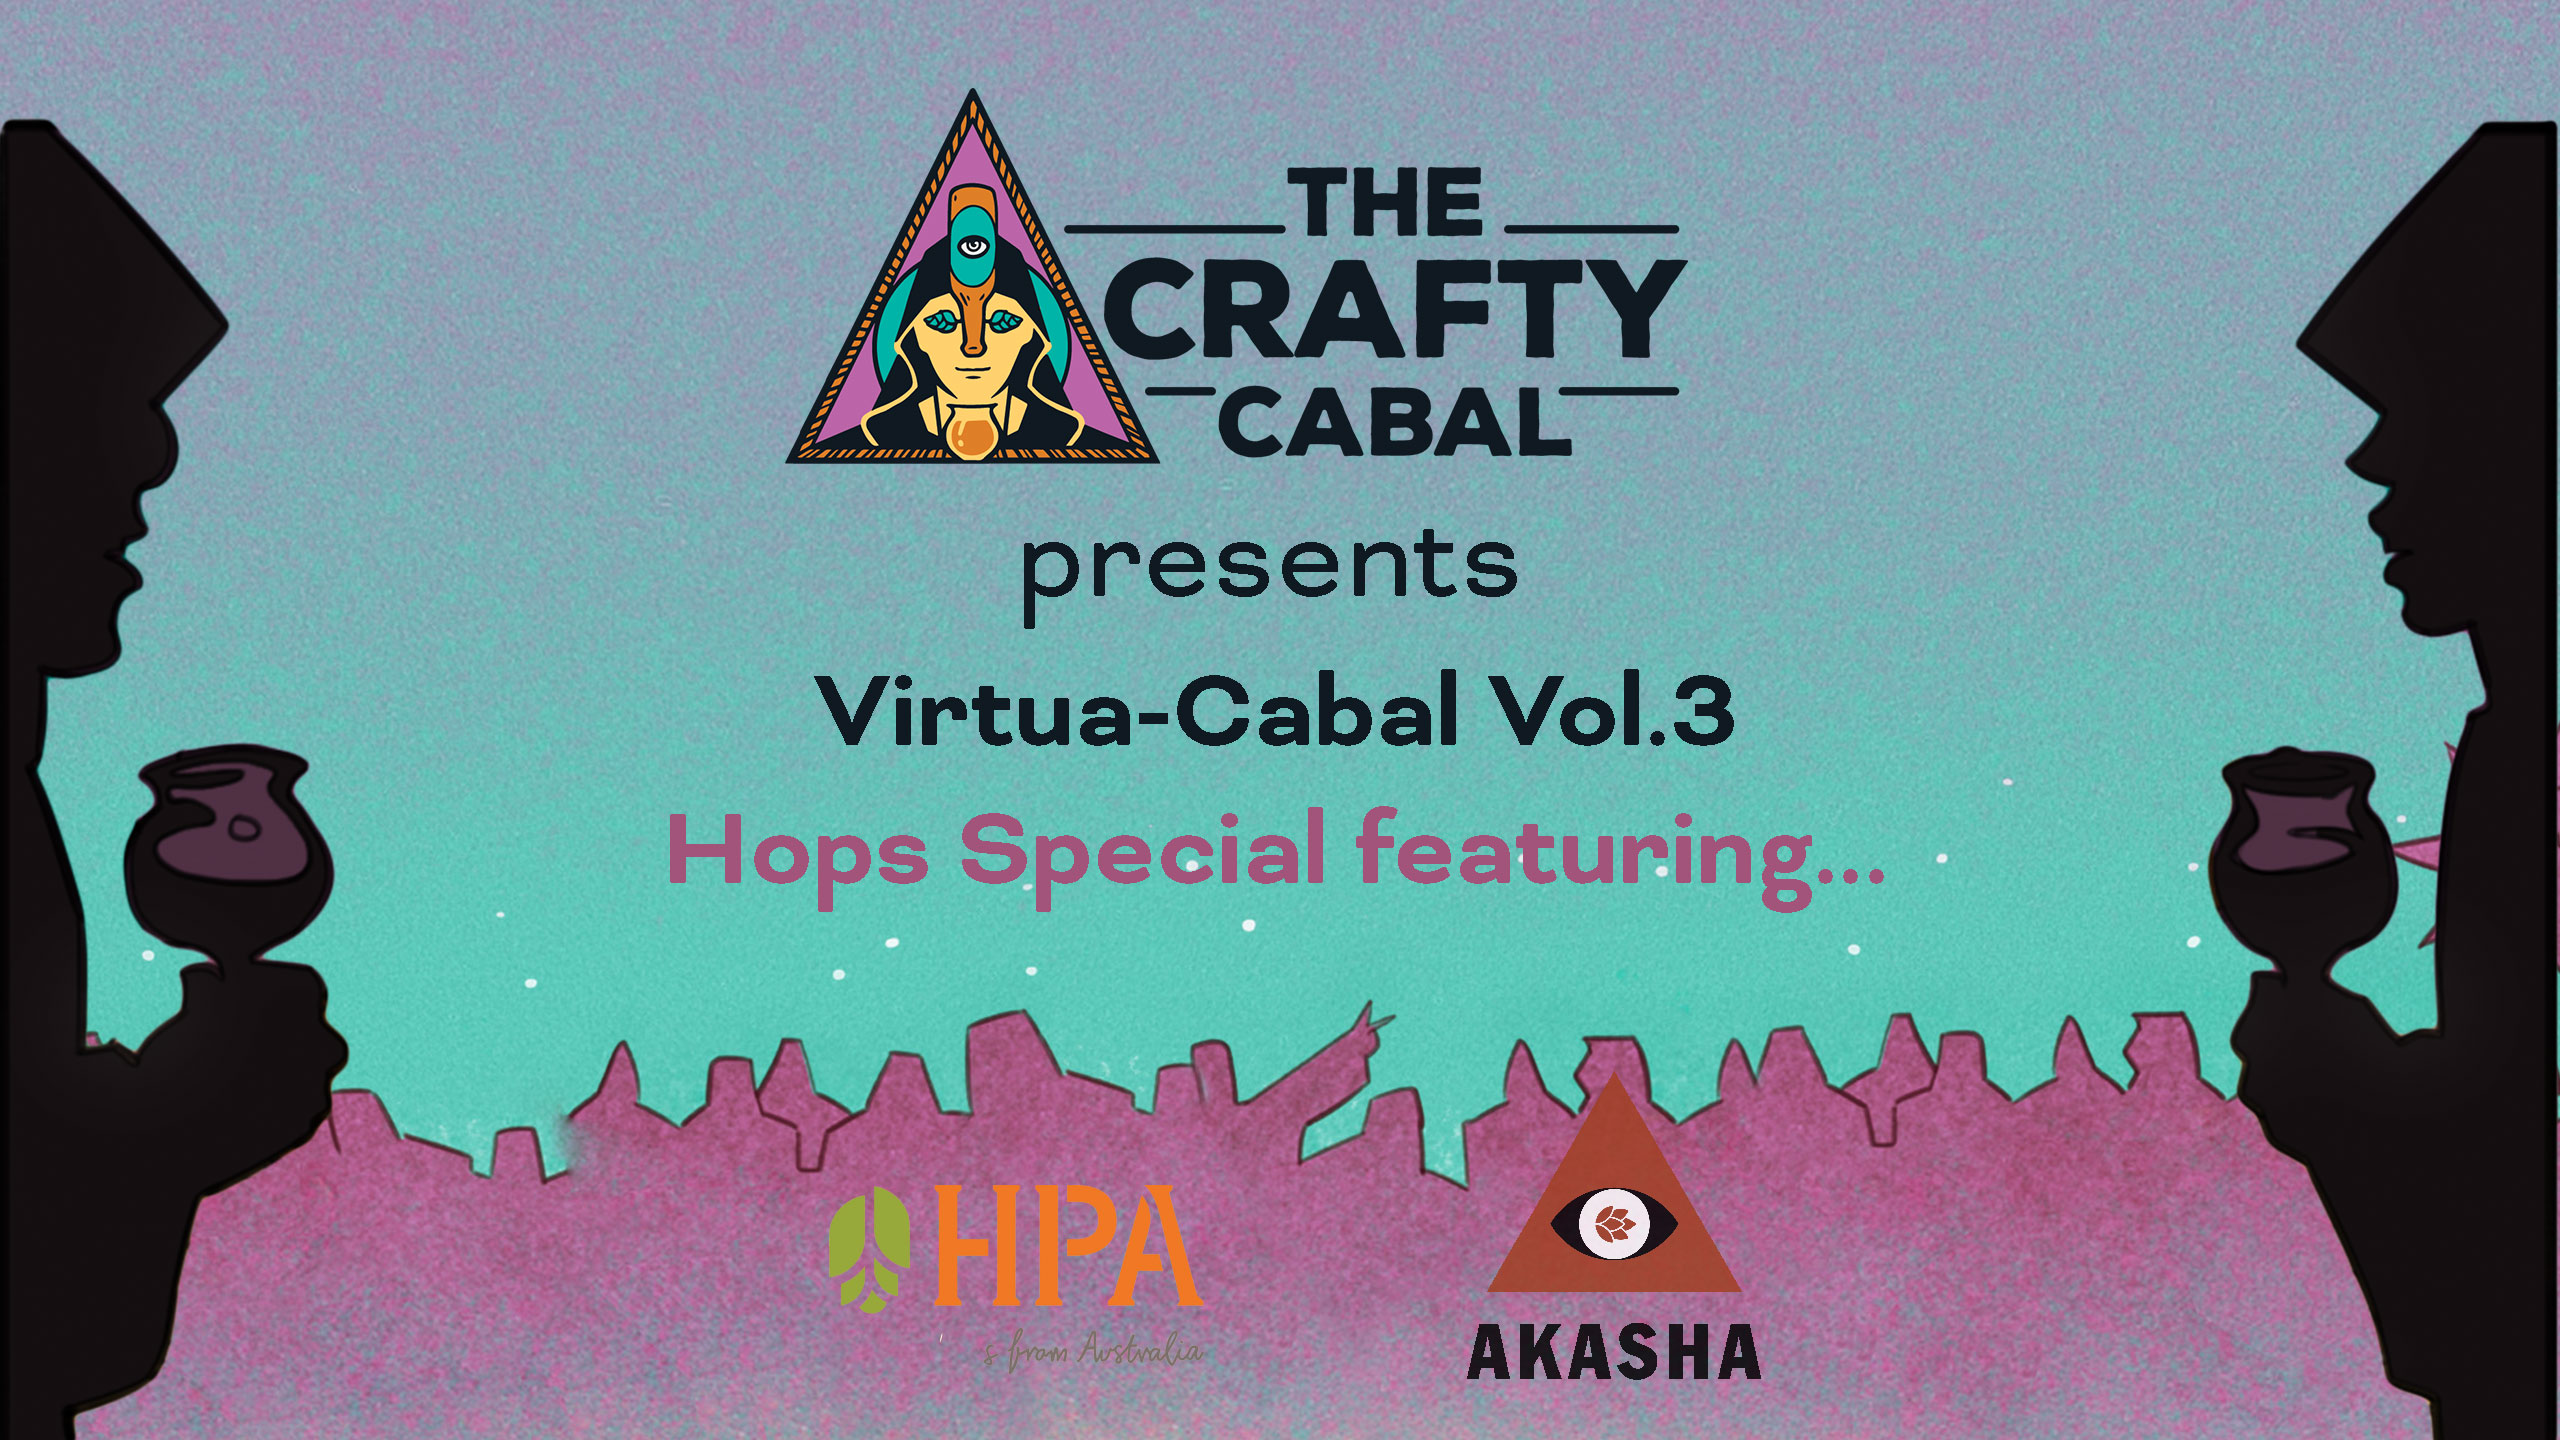 WATCH: Virtua-Cabal Vol.3 ft Akasha & HPA